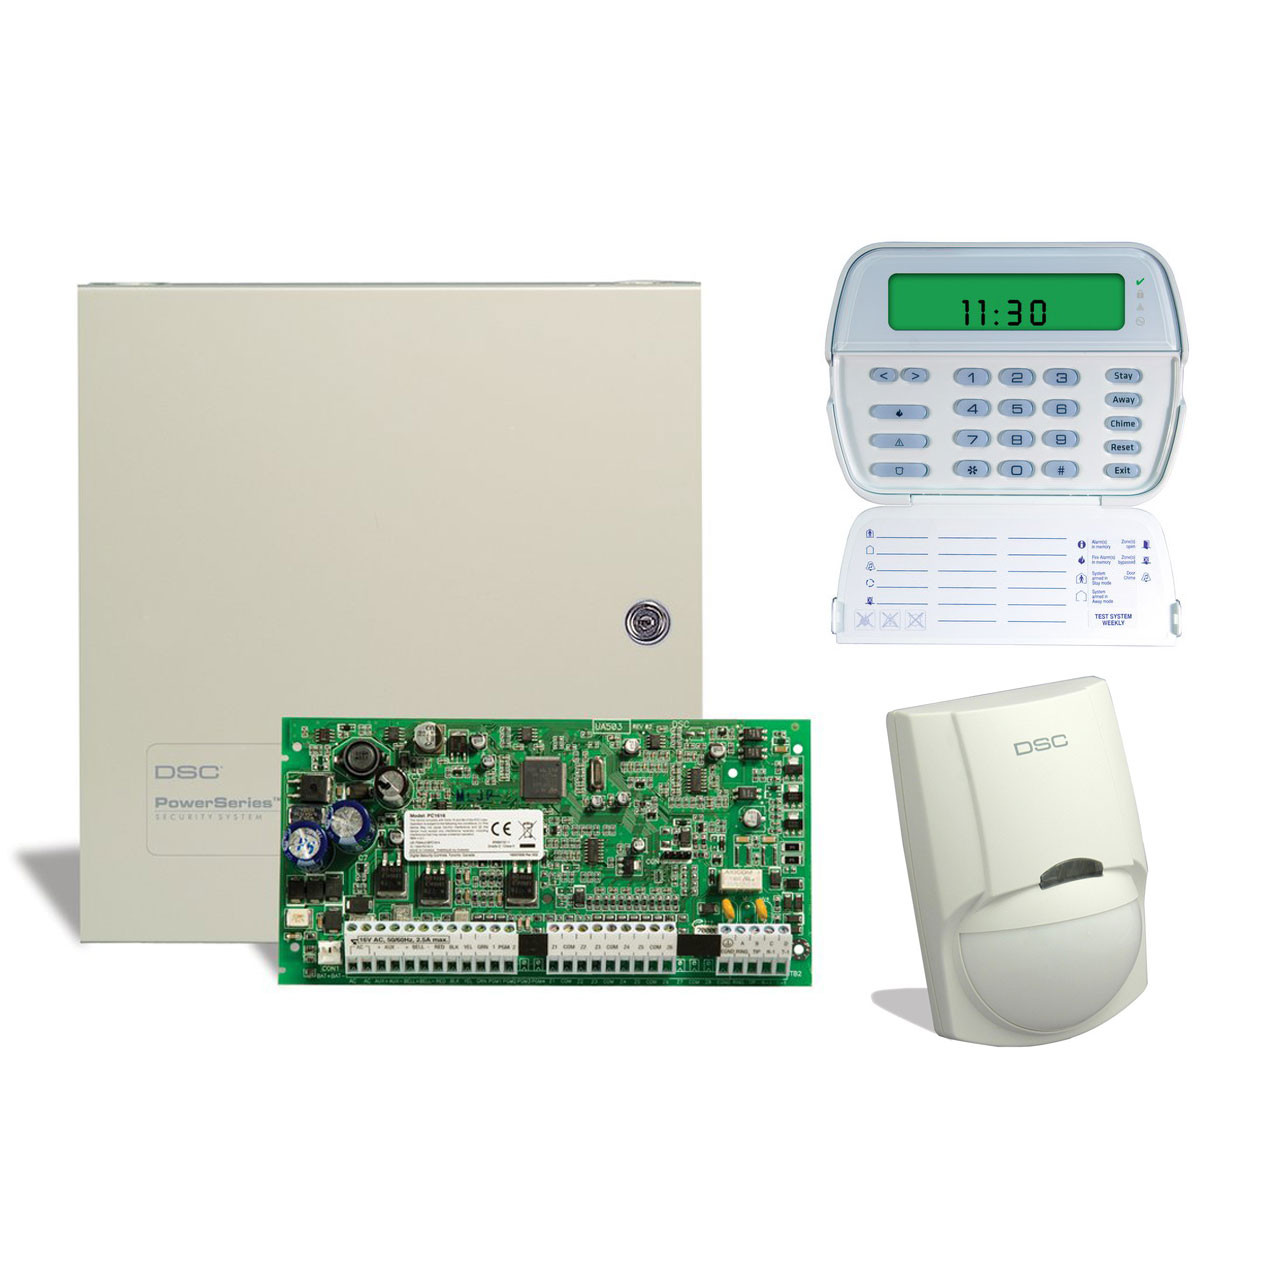 dsc keypad wiring diagram evinrude outboard ignition switch 6 zone alarm kit with and motion detector